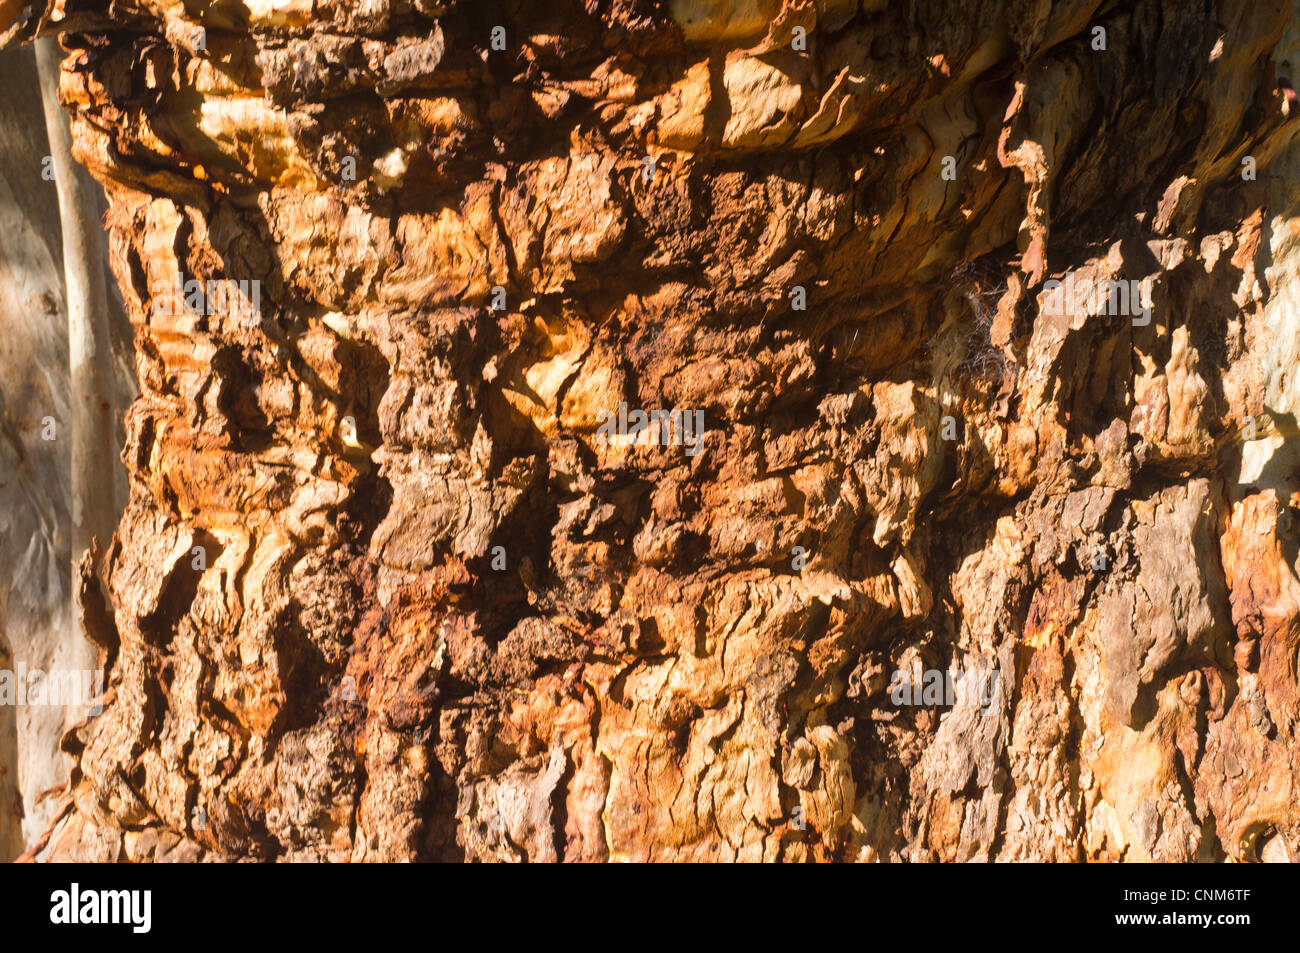 Textured bark on a River Red Gum tree (Eucalyptus camaldulensis) at Mambray Creek in Mount Remarkable National Park - Stock Image